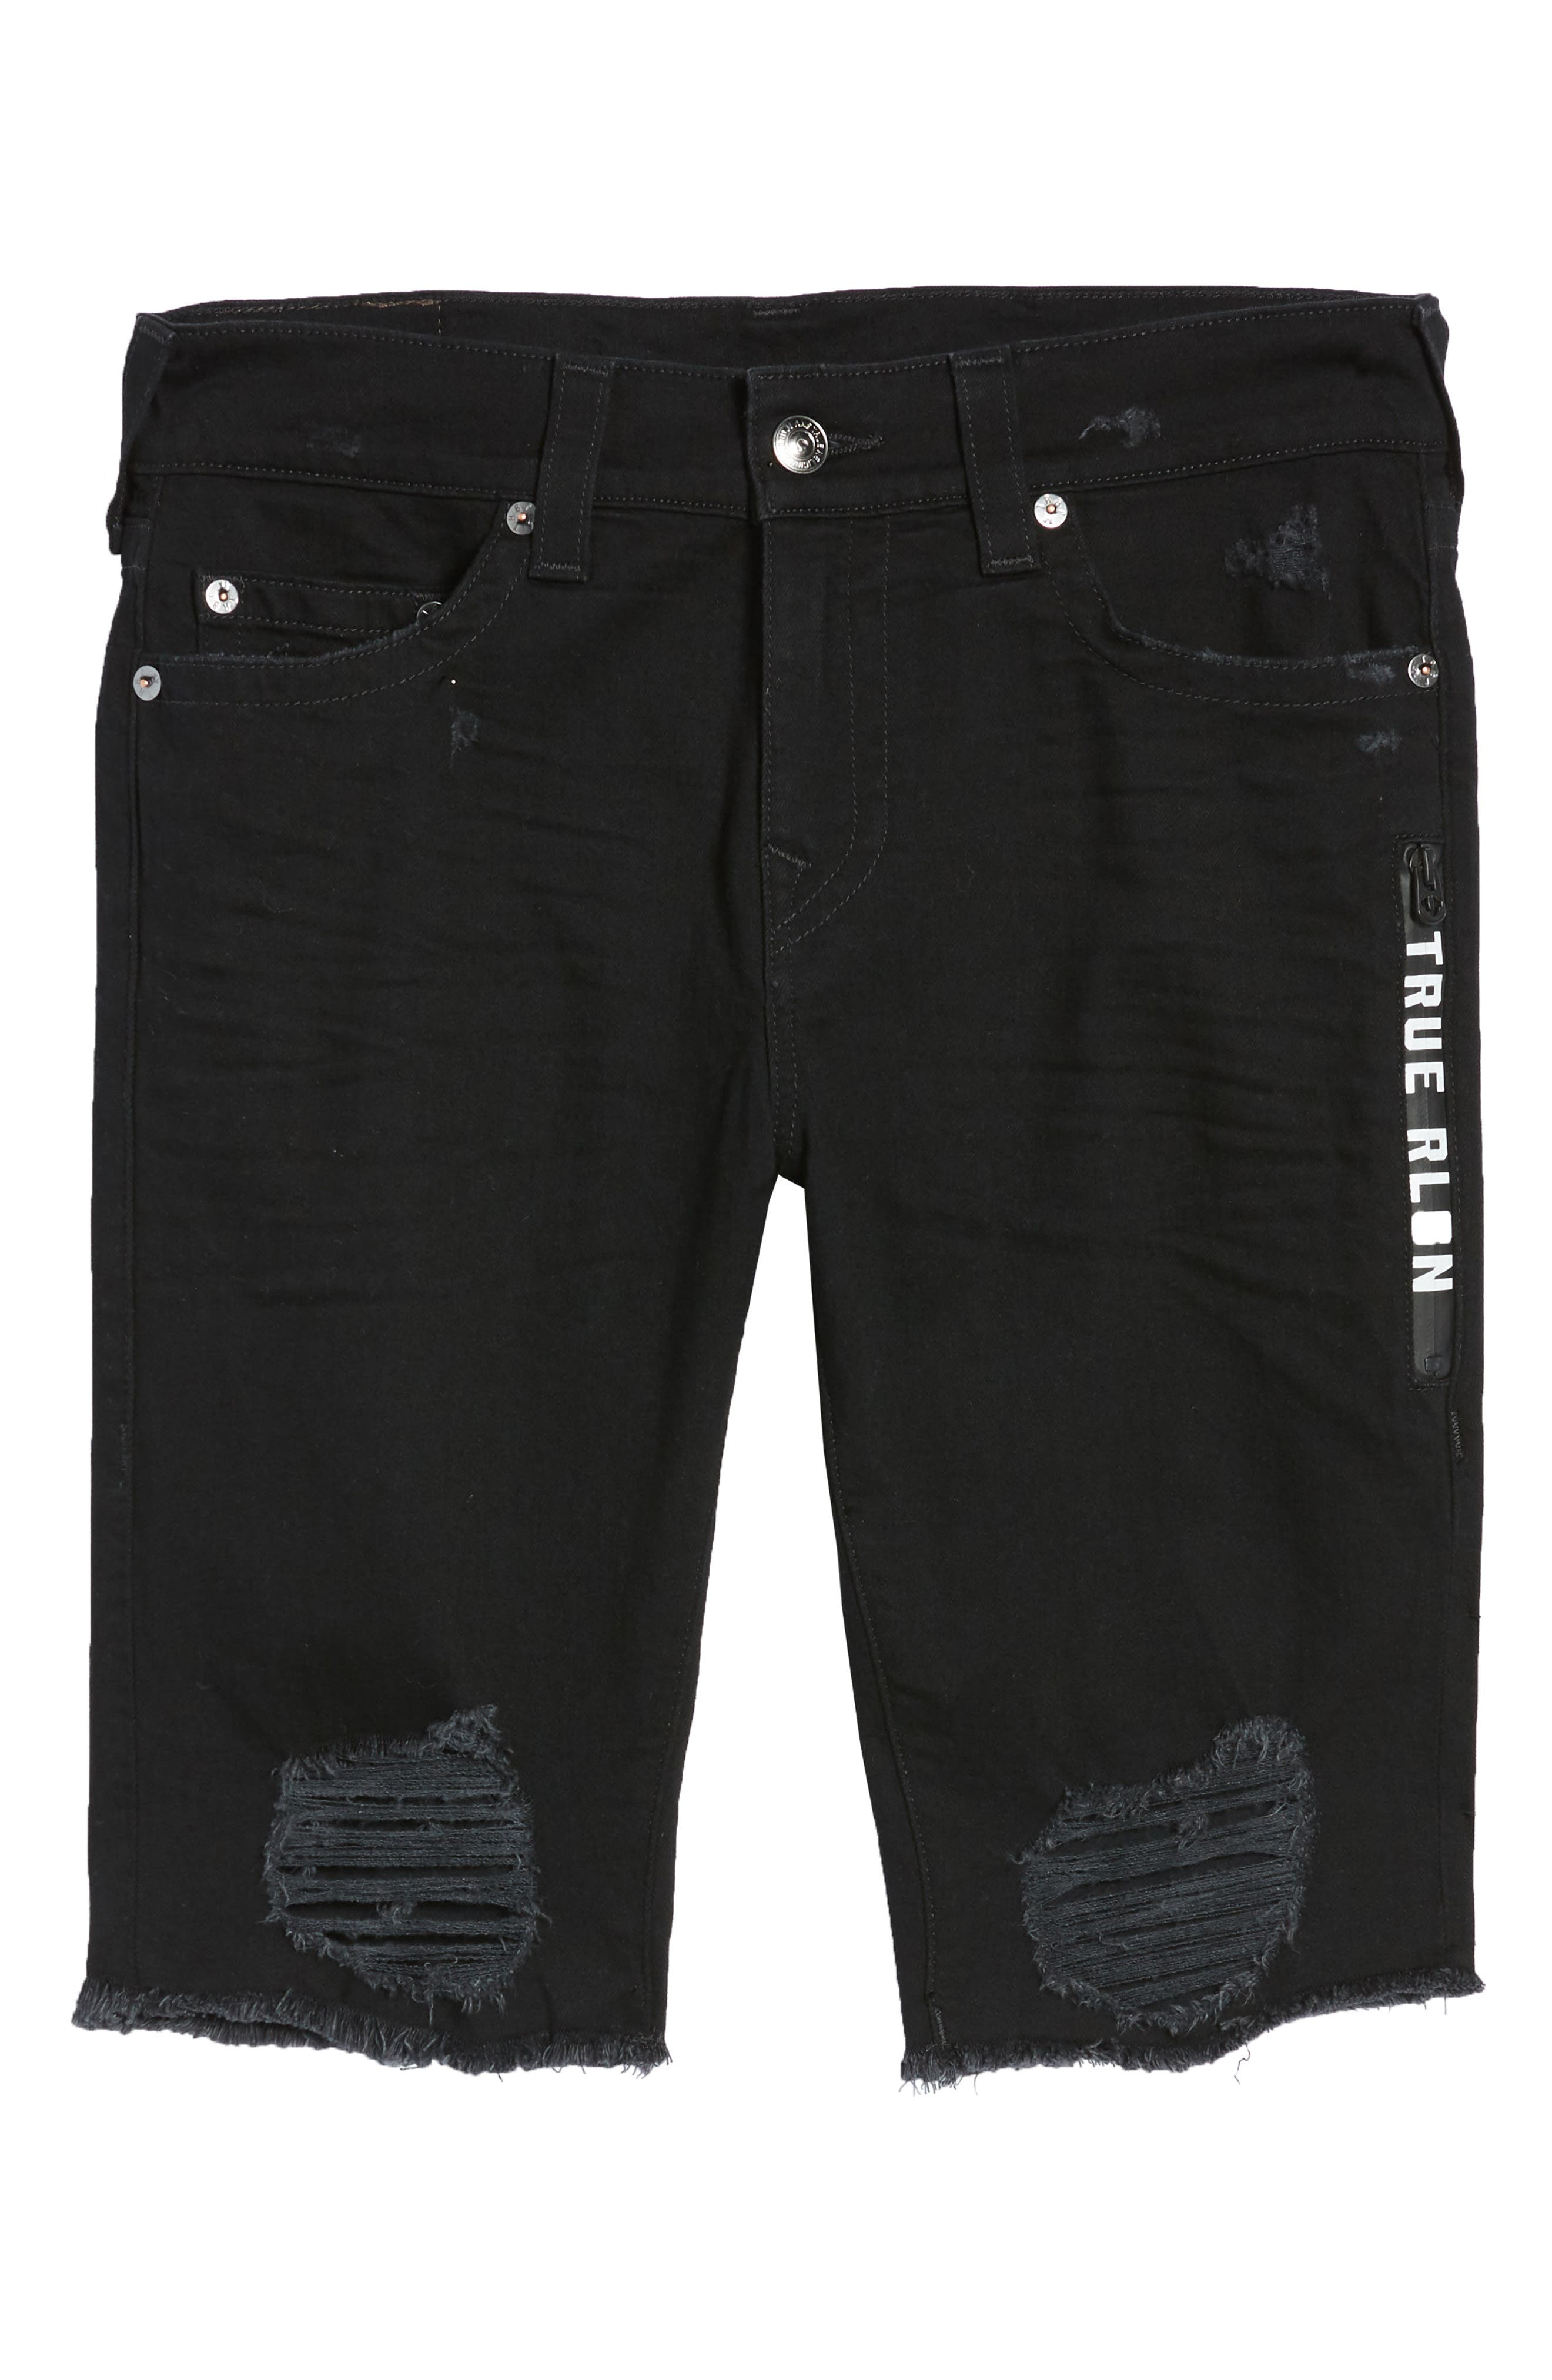 Ricky Relaxed Fit Shorts,                             Alternate thumbnail 6, color,                             Chalkboard